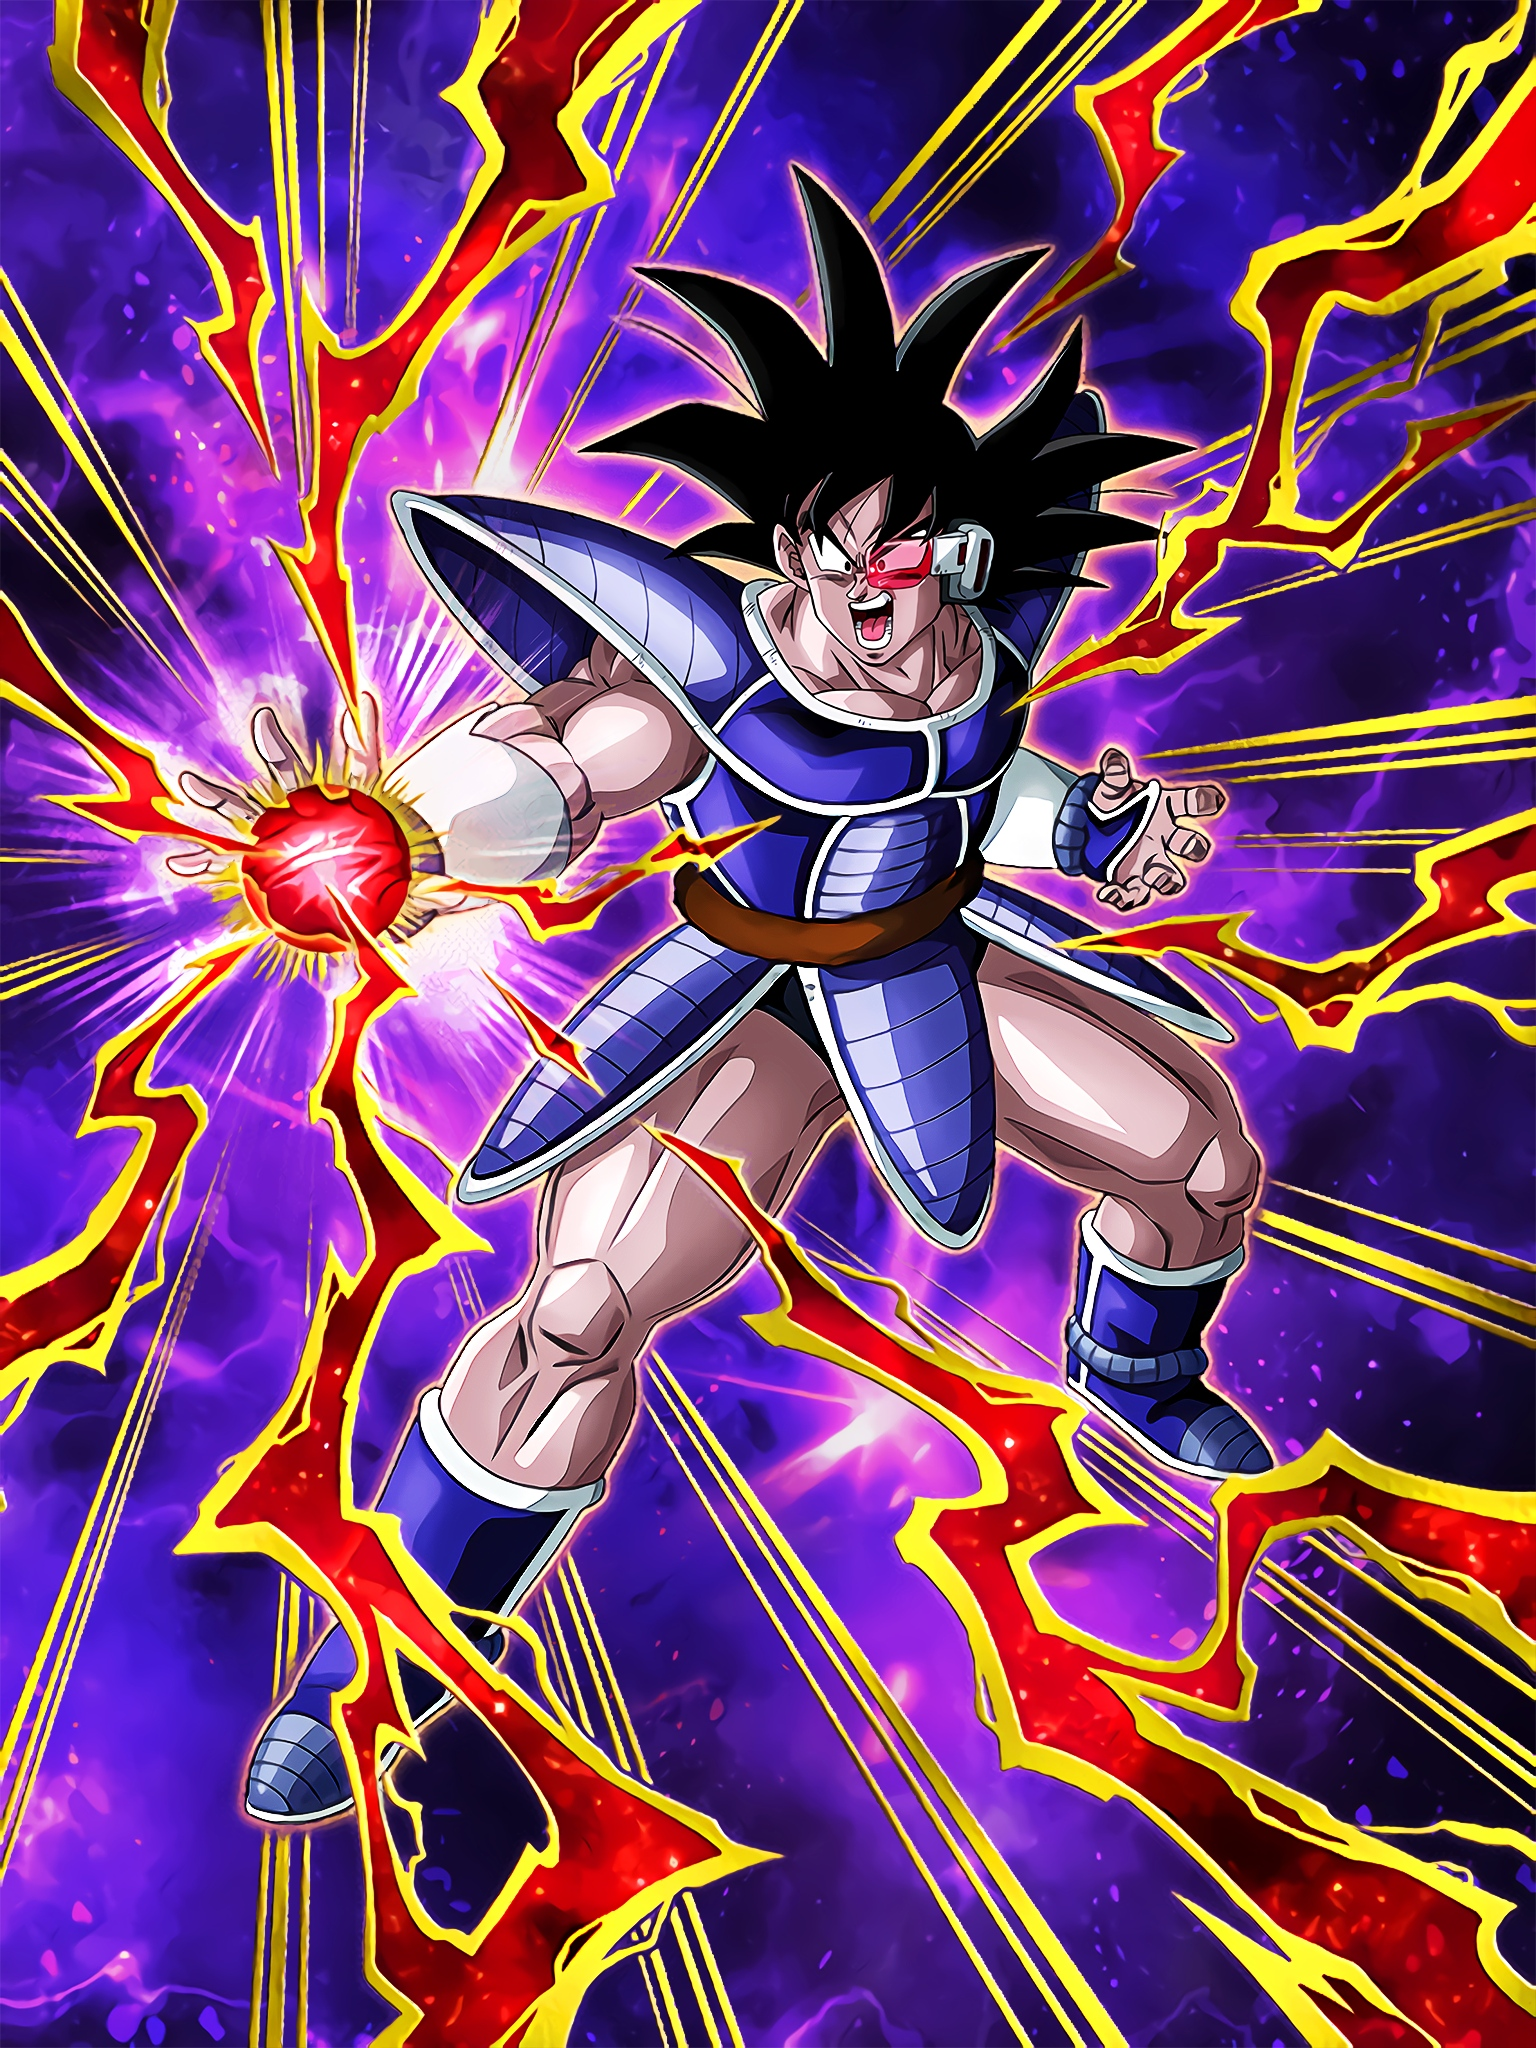 Shining Crushers Turles Art (Dragon Ball Z Dokkan Battle).jpg